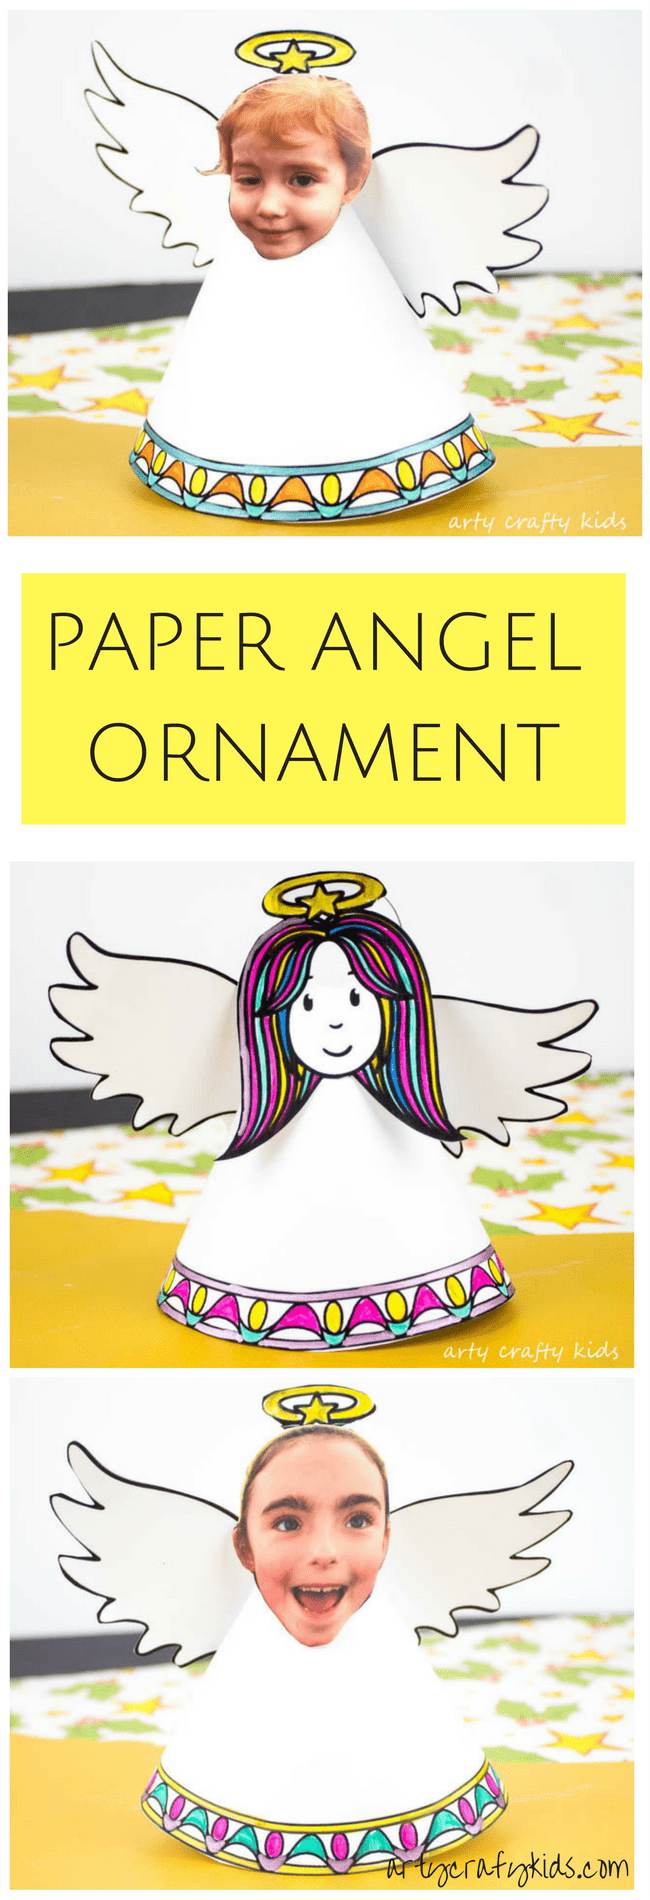 Paper angel christmas ornament crafty kids design color and